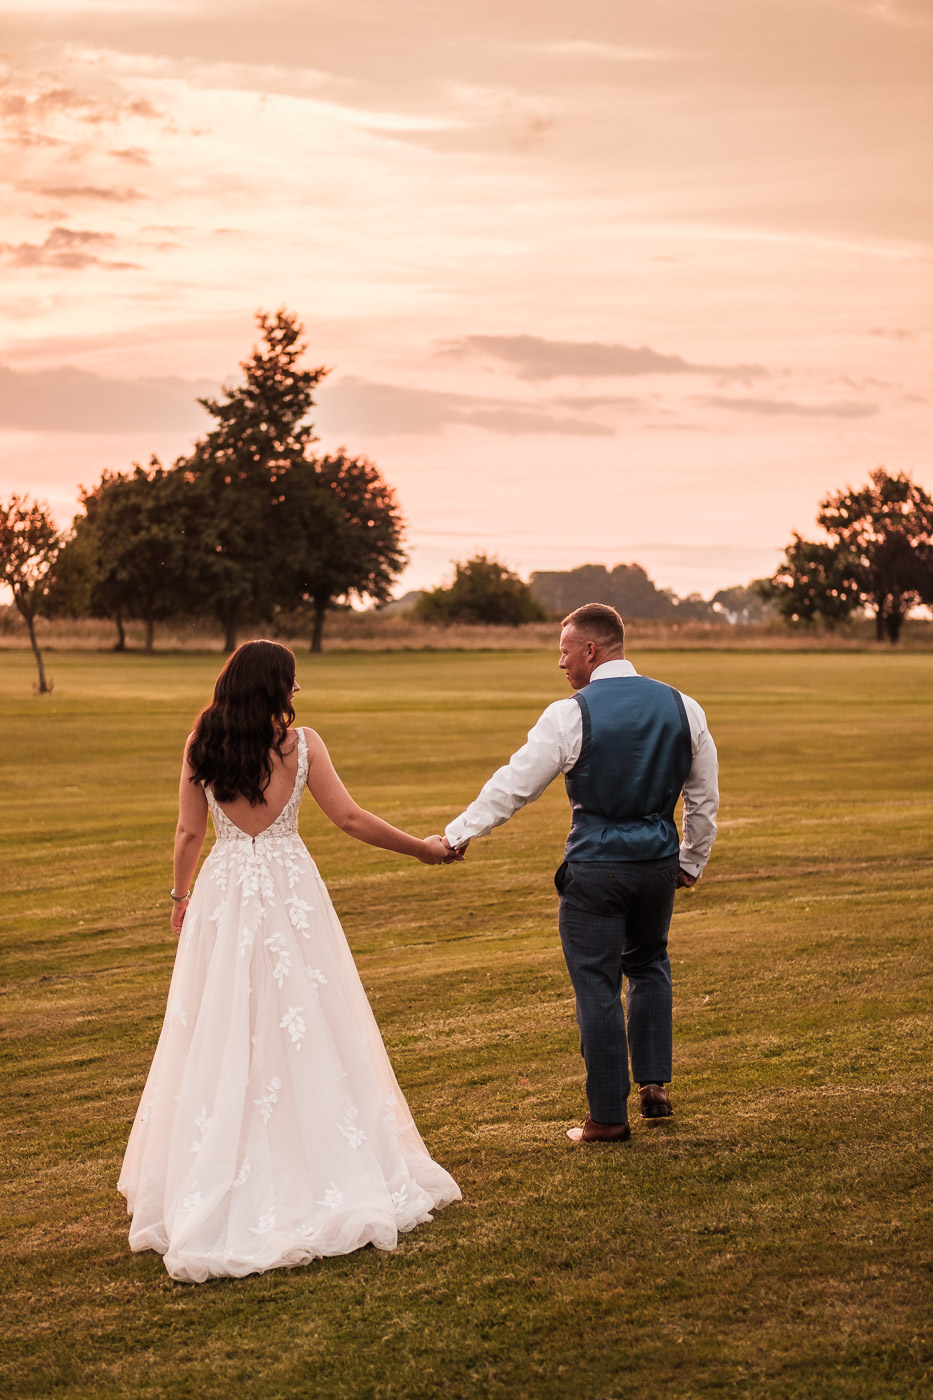 bride and groom walk into the sunset at golden hour at Pryors Hayes golf club